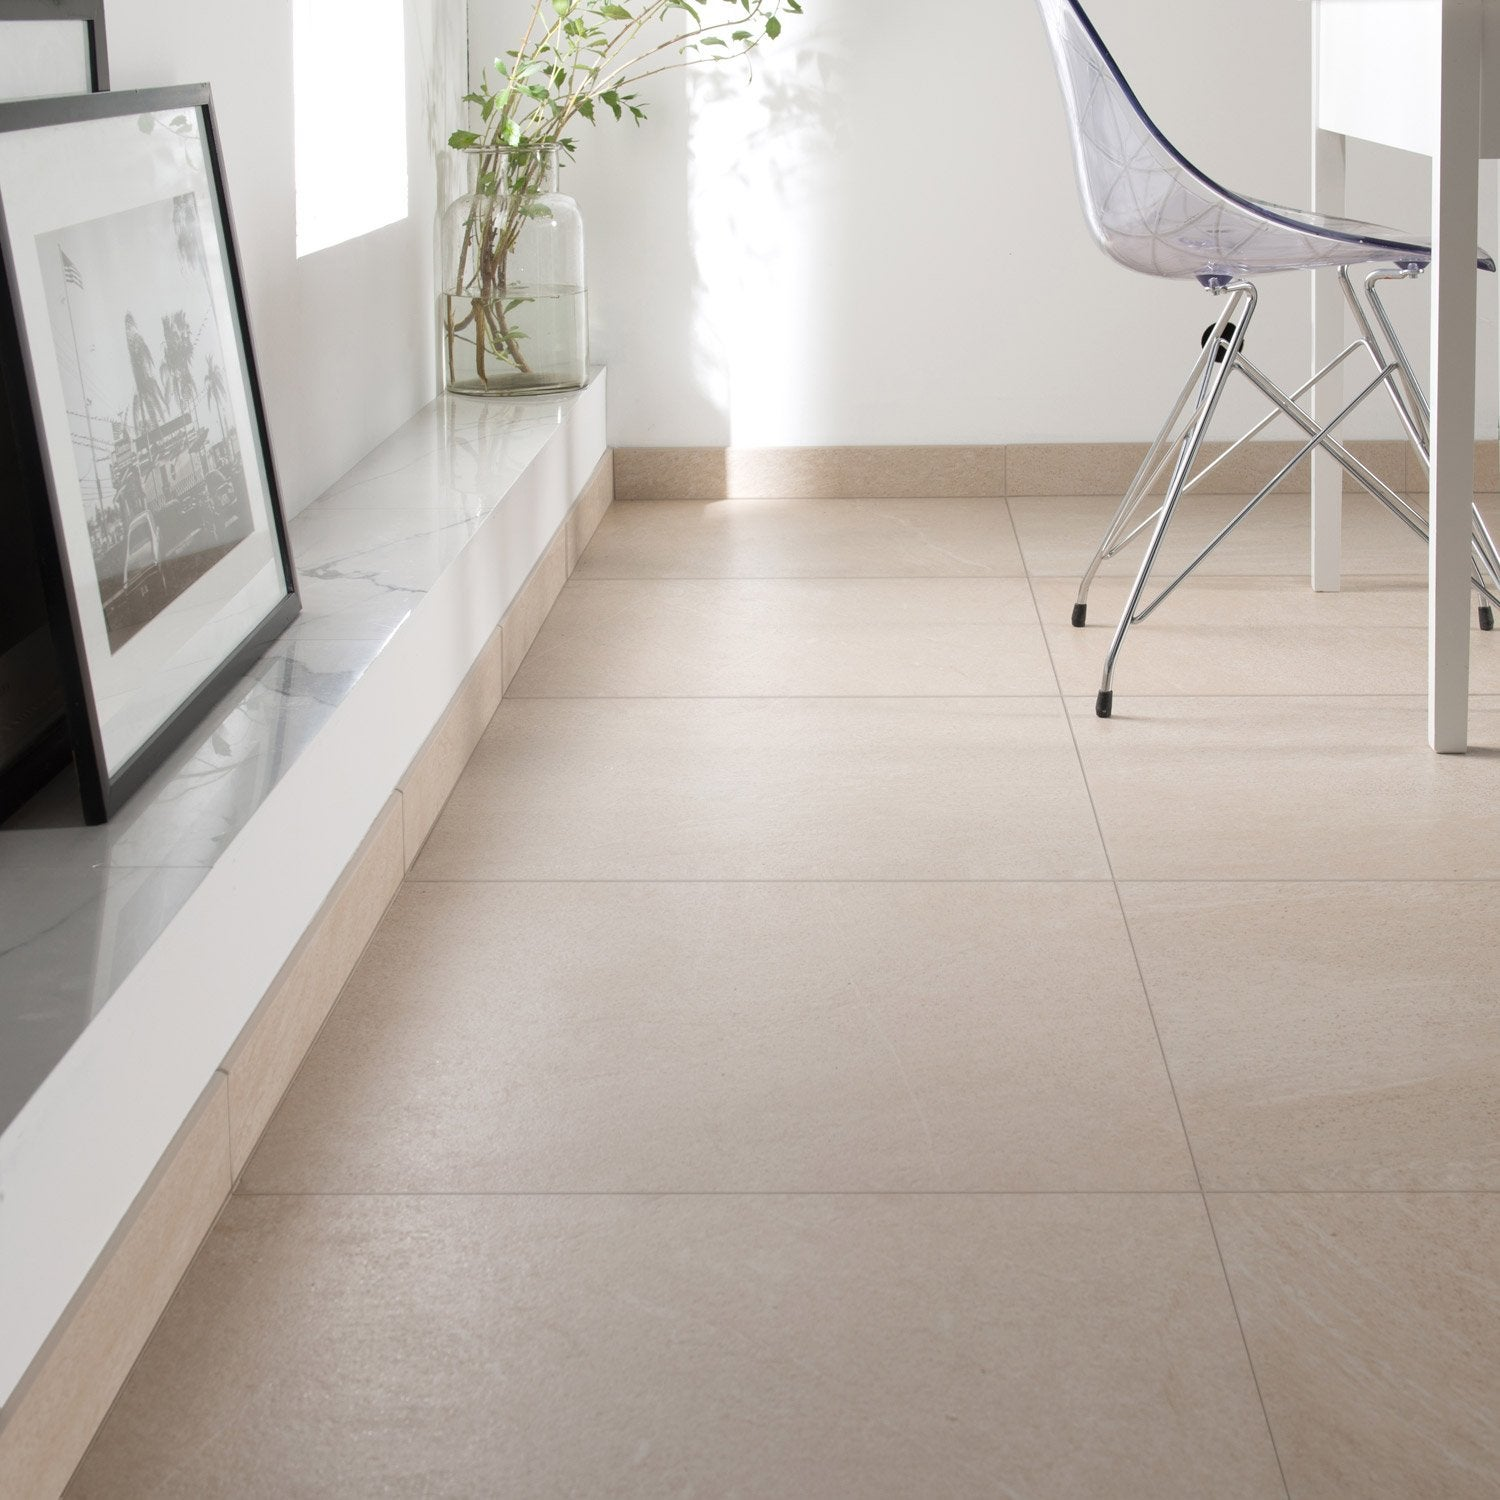 Carrelage sol et mur beige effet pierre milano x for Carrelage spot point p